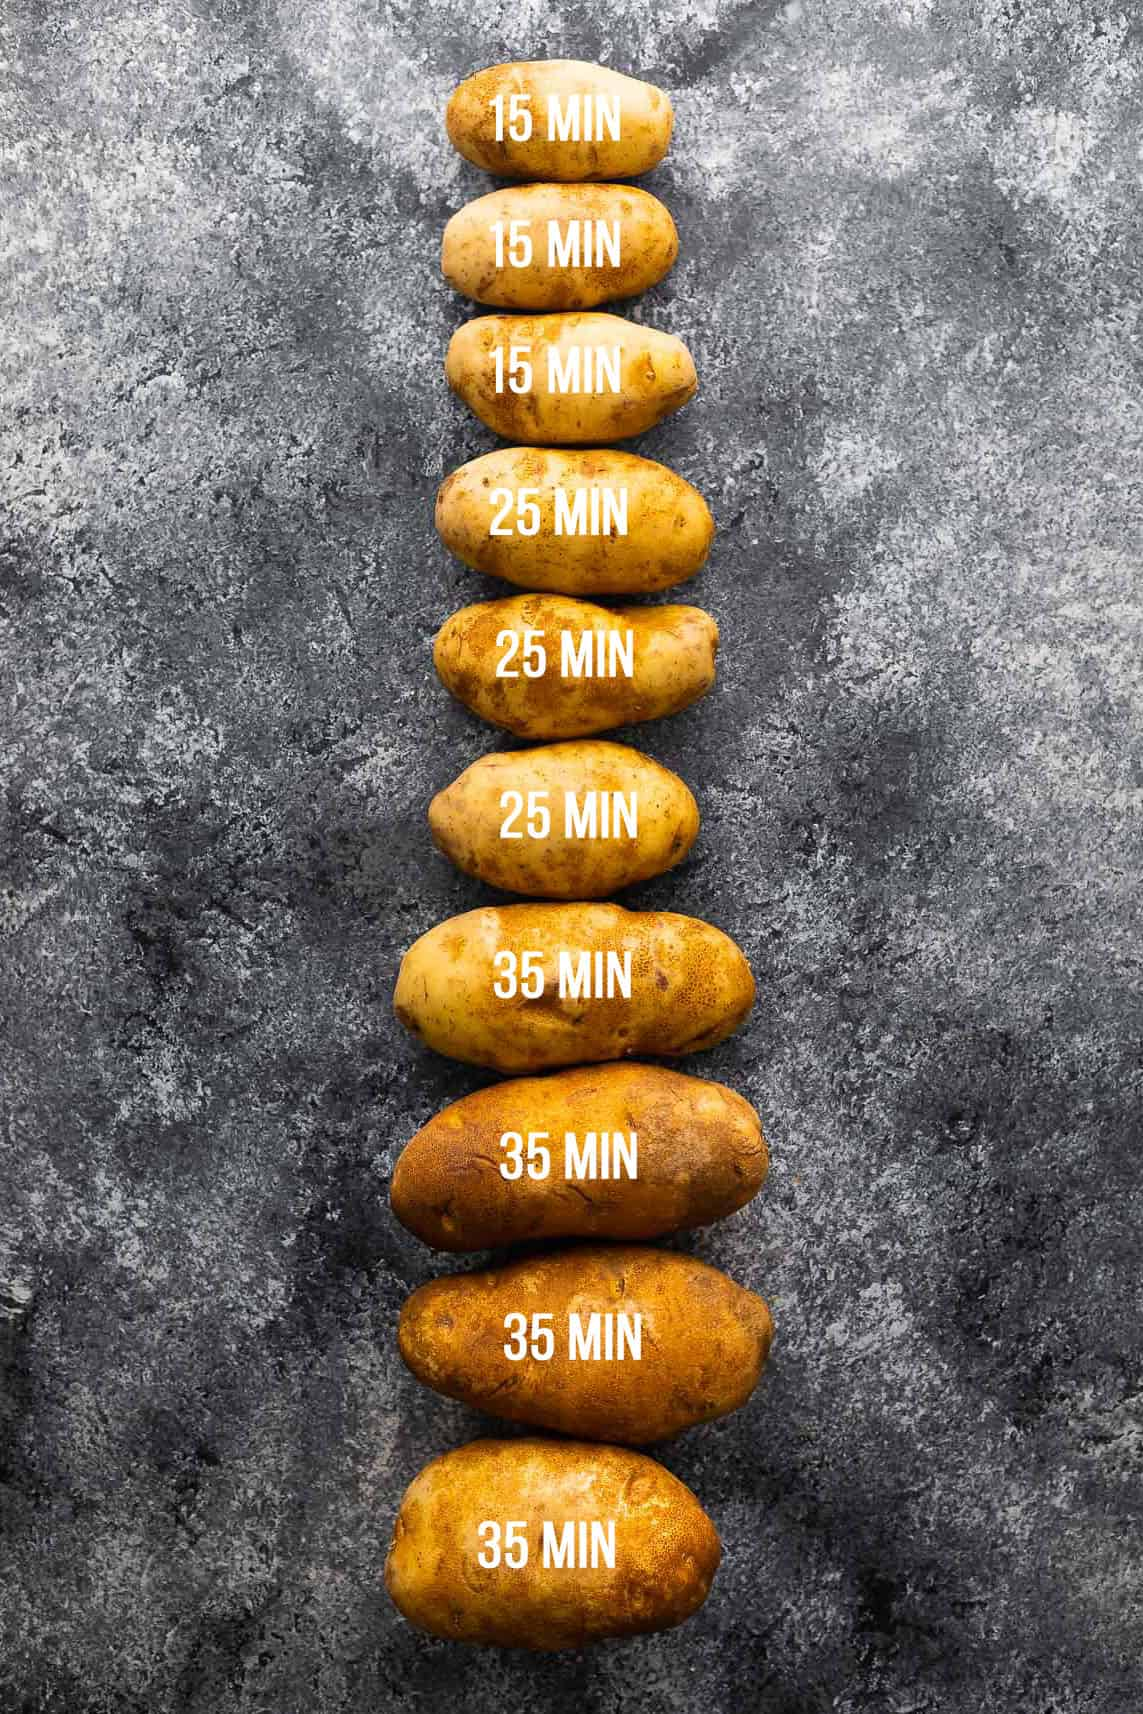 Incremental row of potatoes, each with cooking times